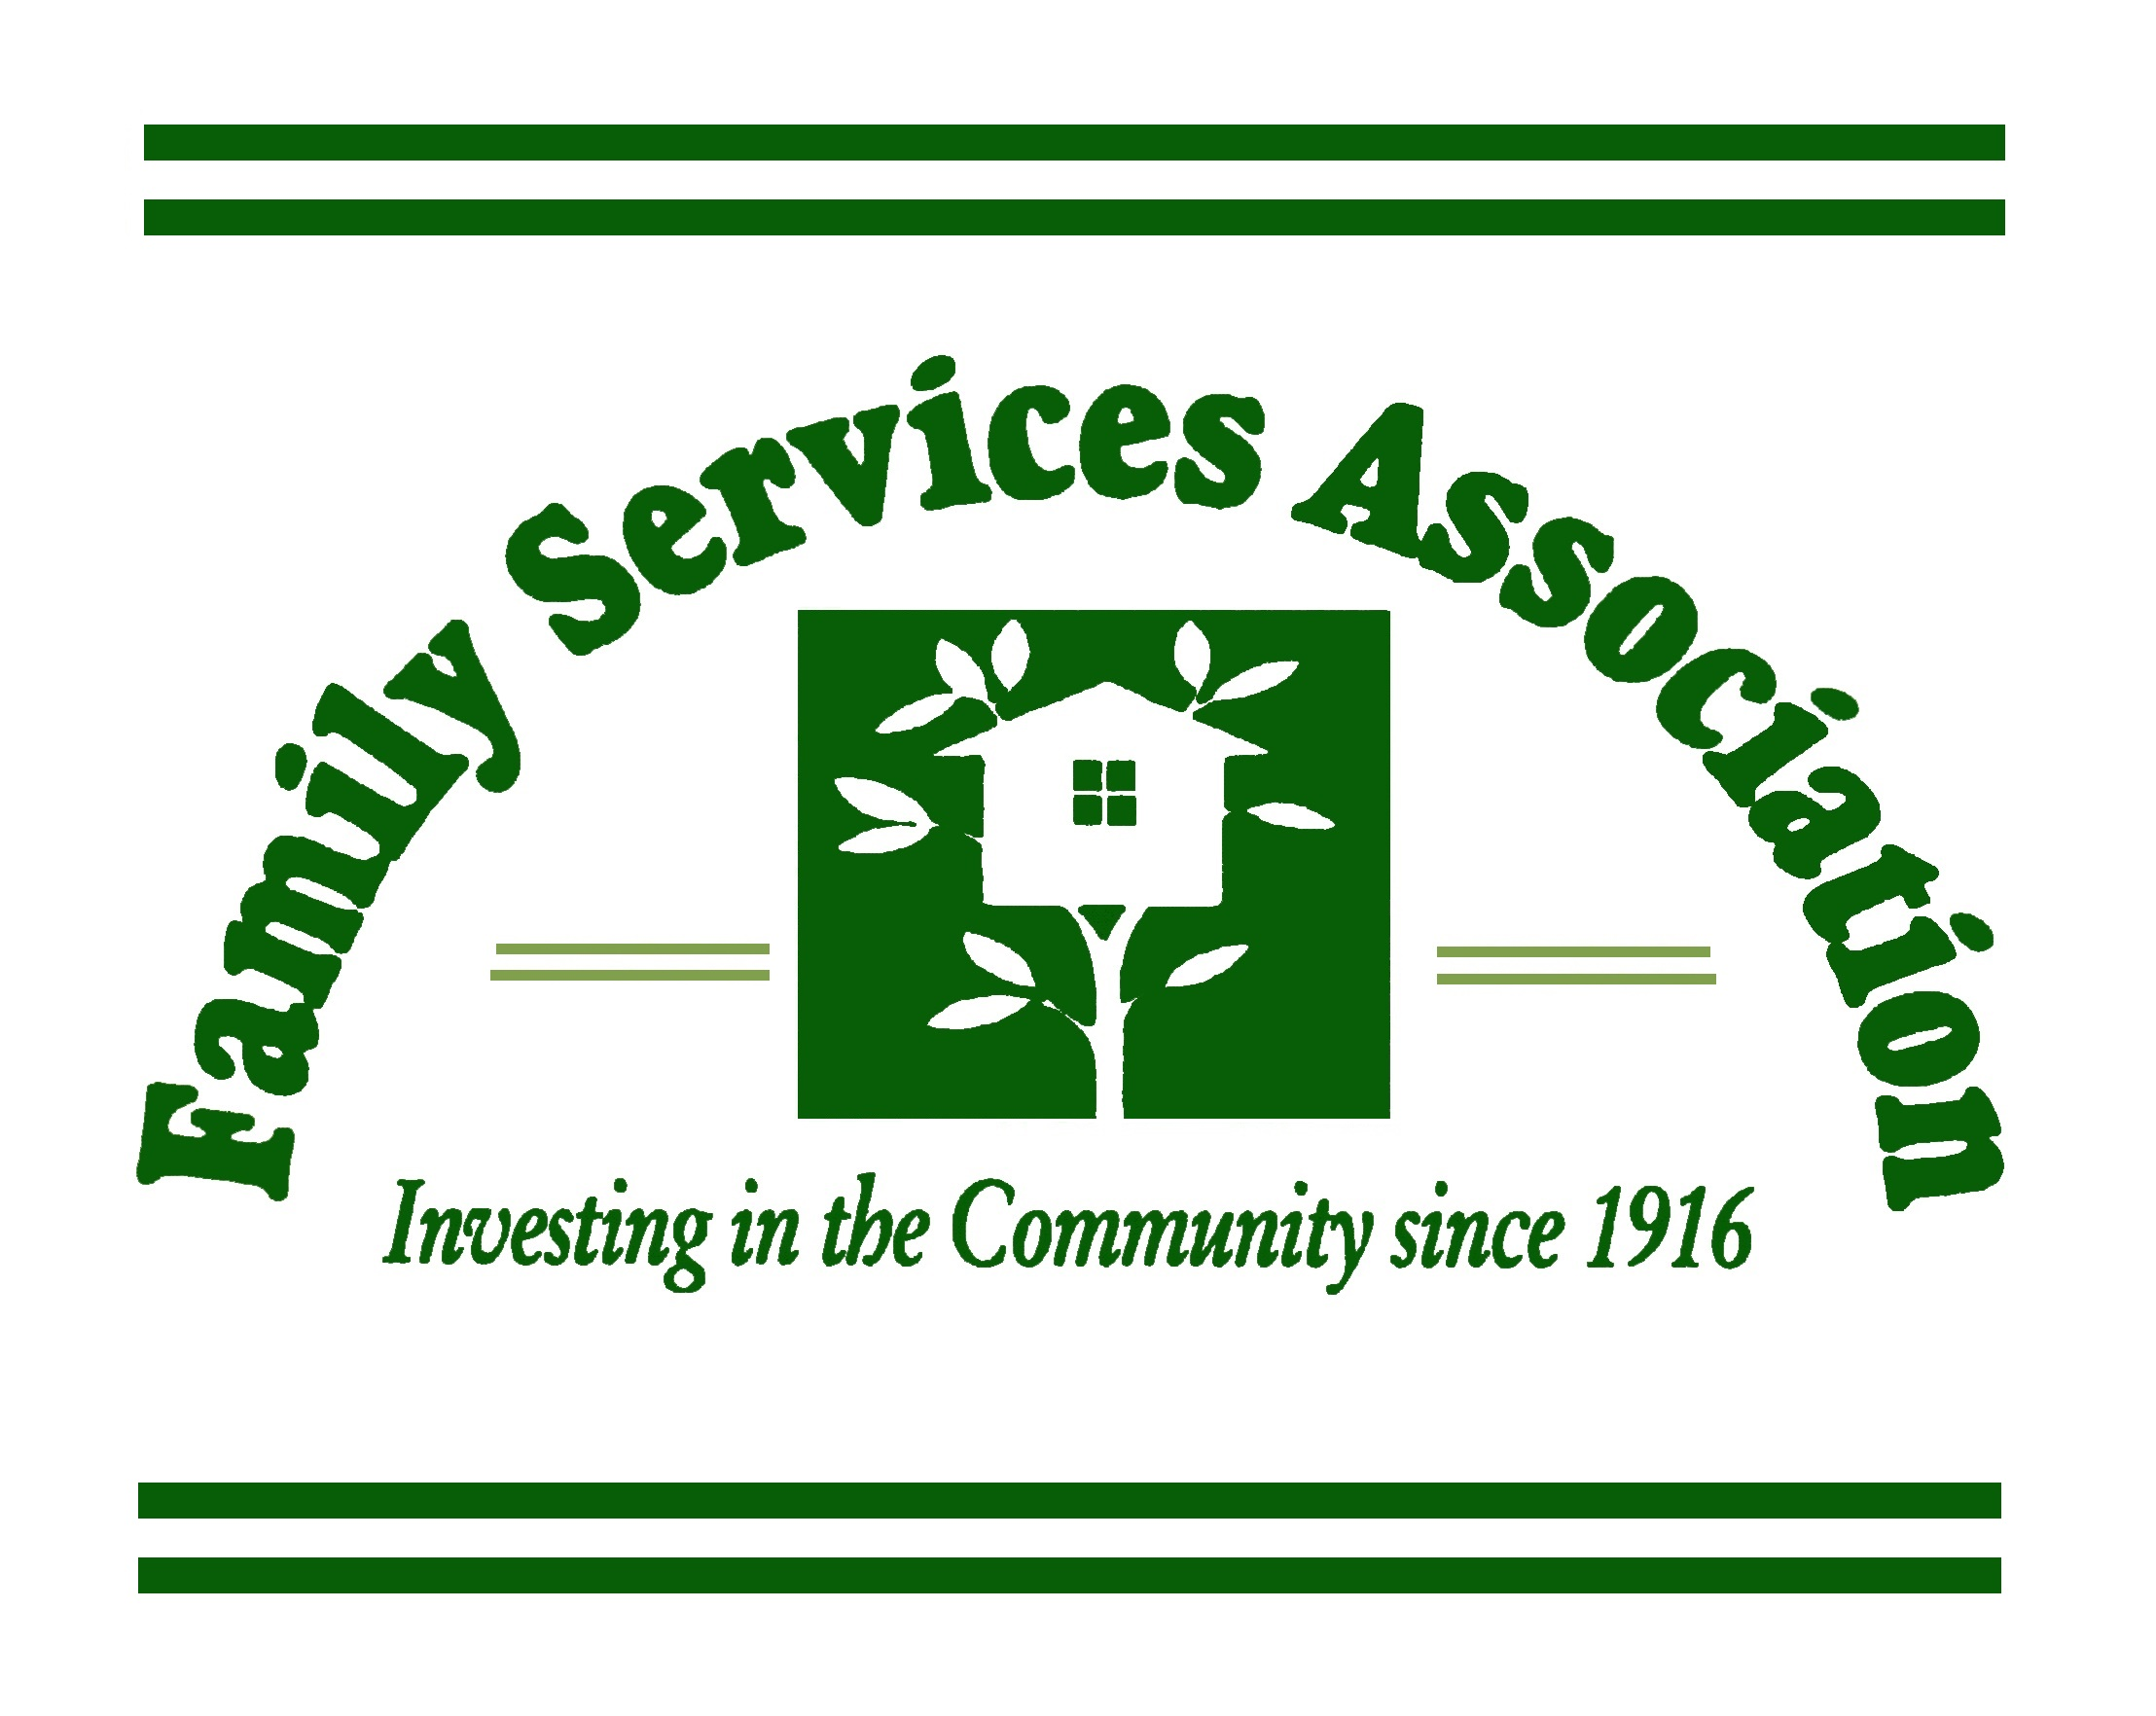 Family Services Association of Boyle County